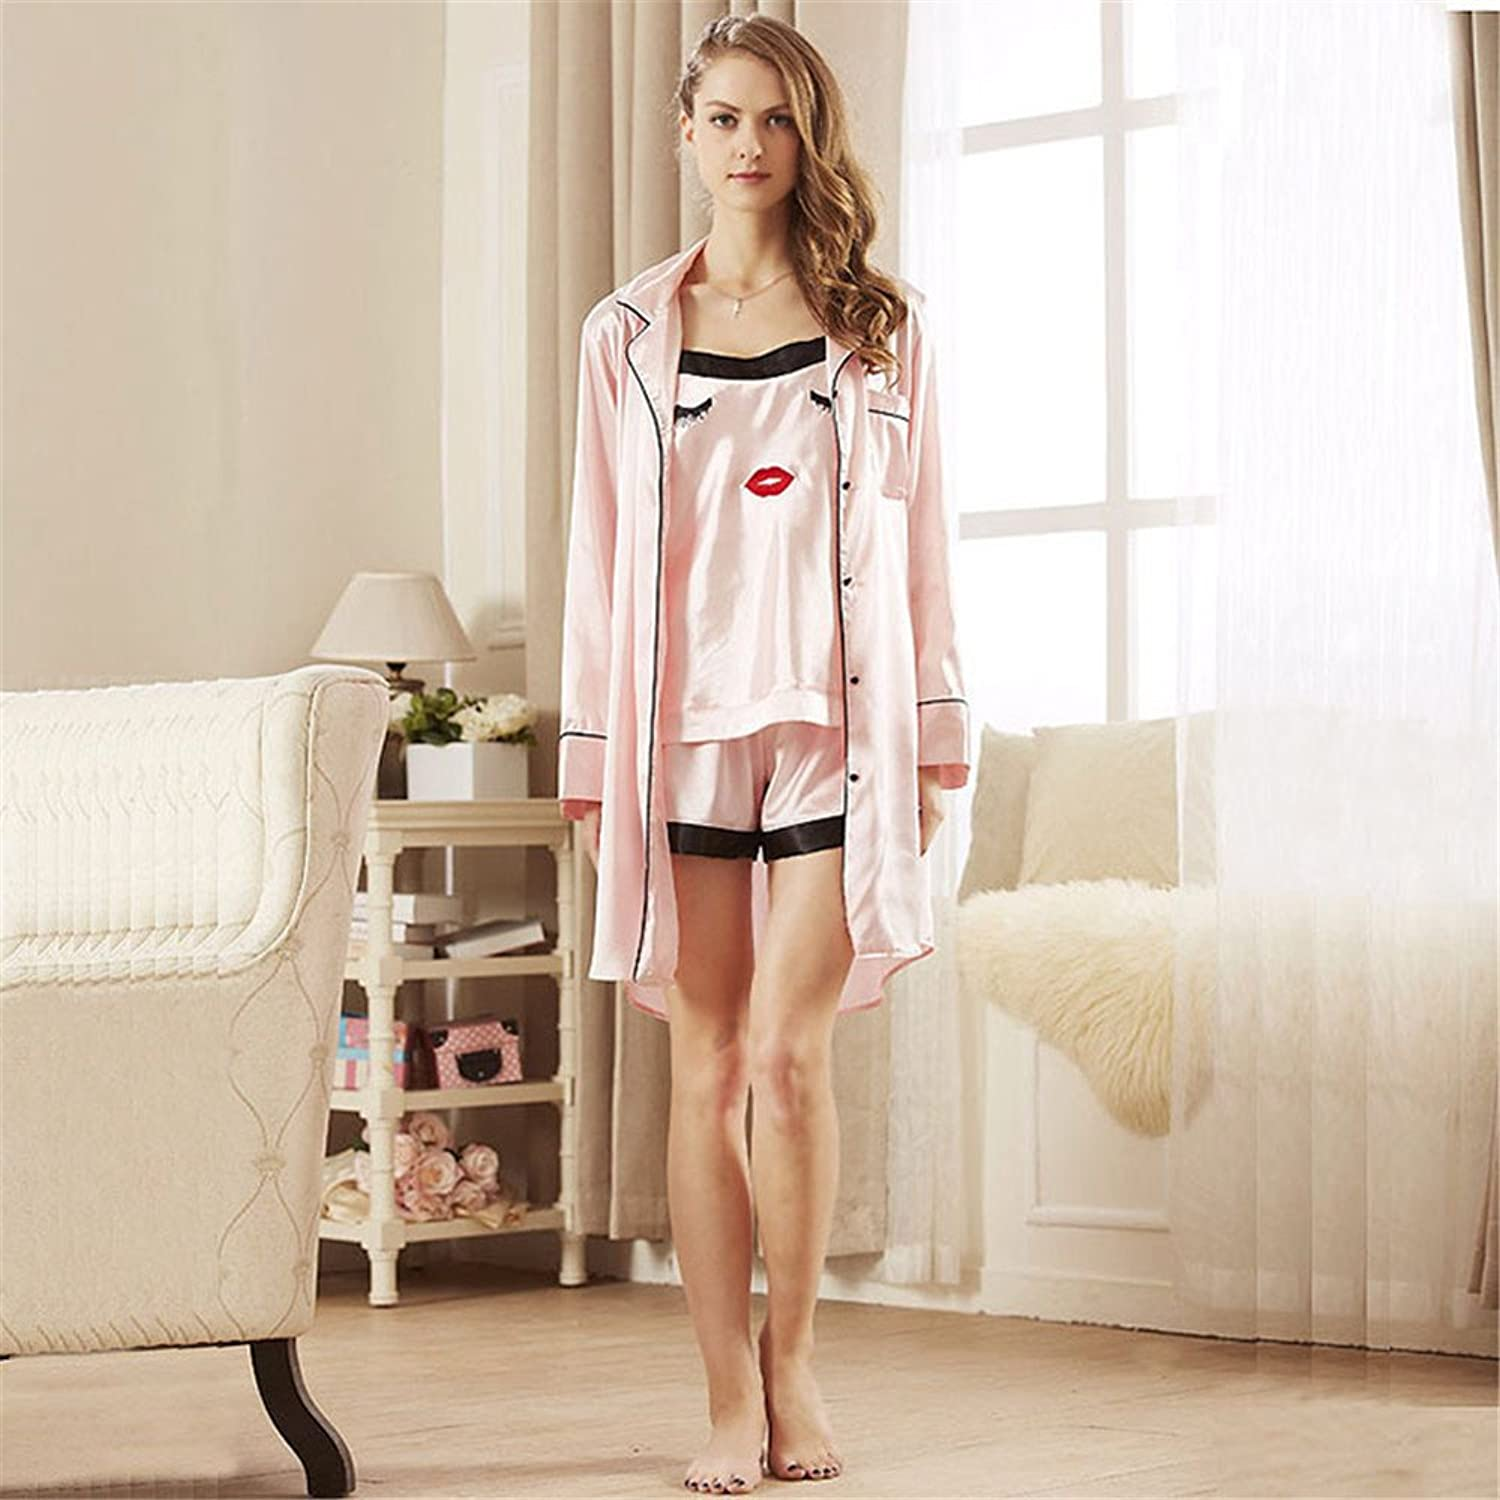 MHRITA The New 3 Sets of Japanese Clothing Home Furnishing Nightdress,Pink,L